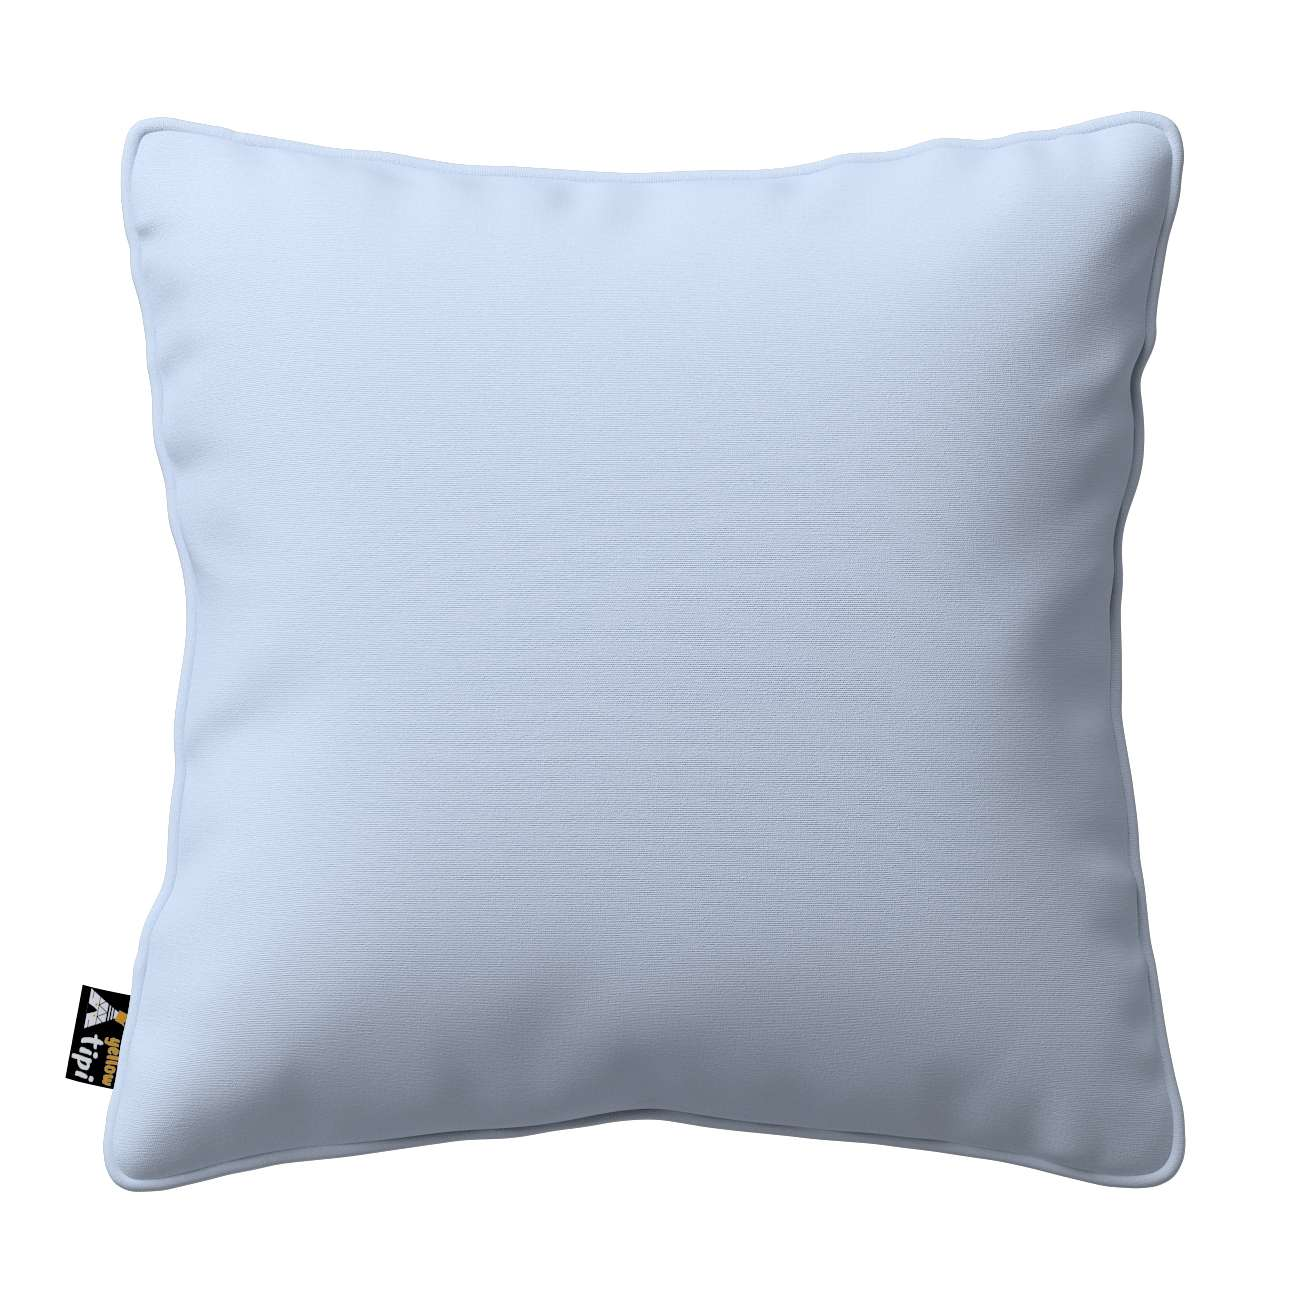 Lola piped cushion cover in collection Happiness, fabric: 133-35